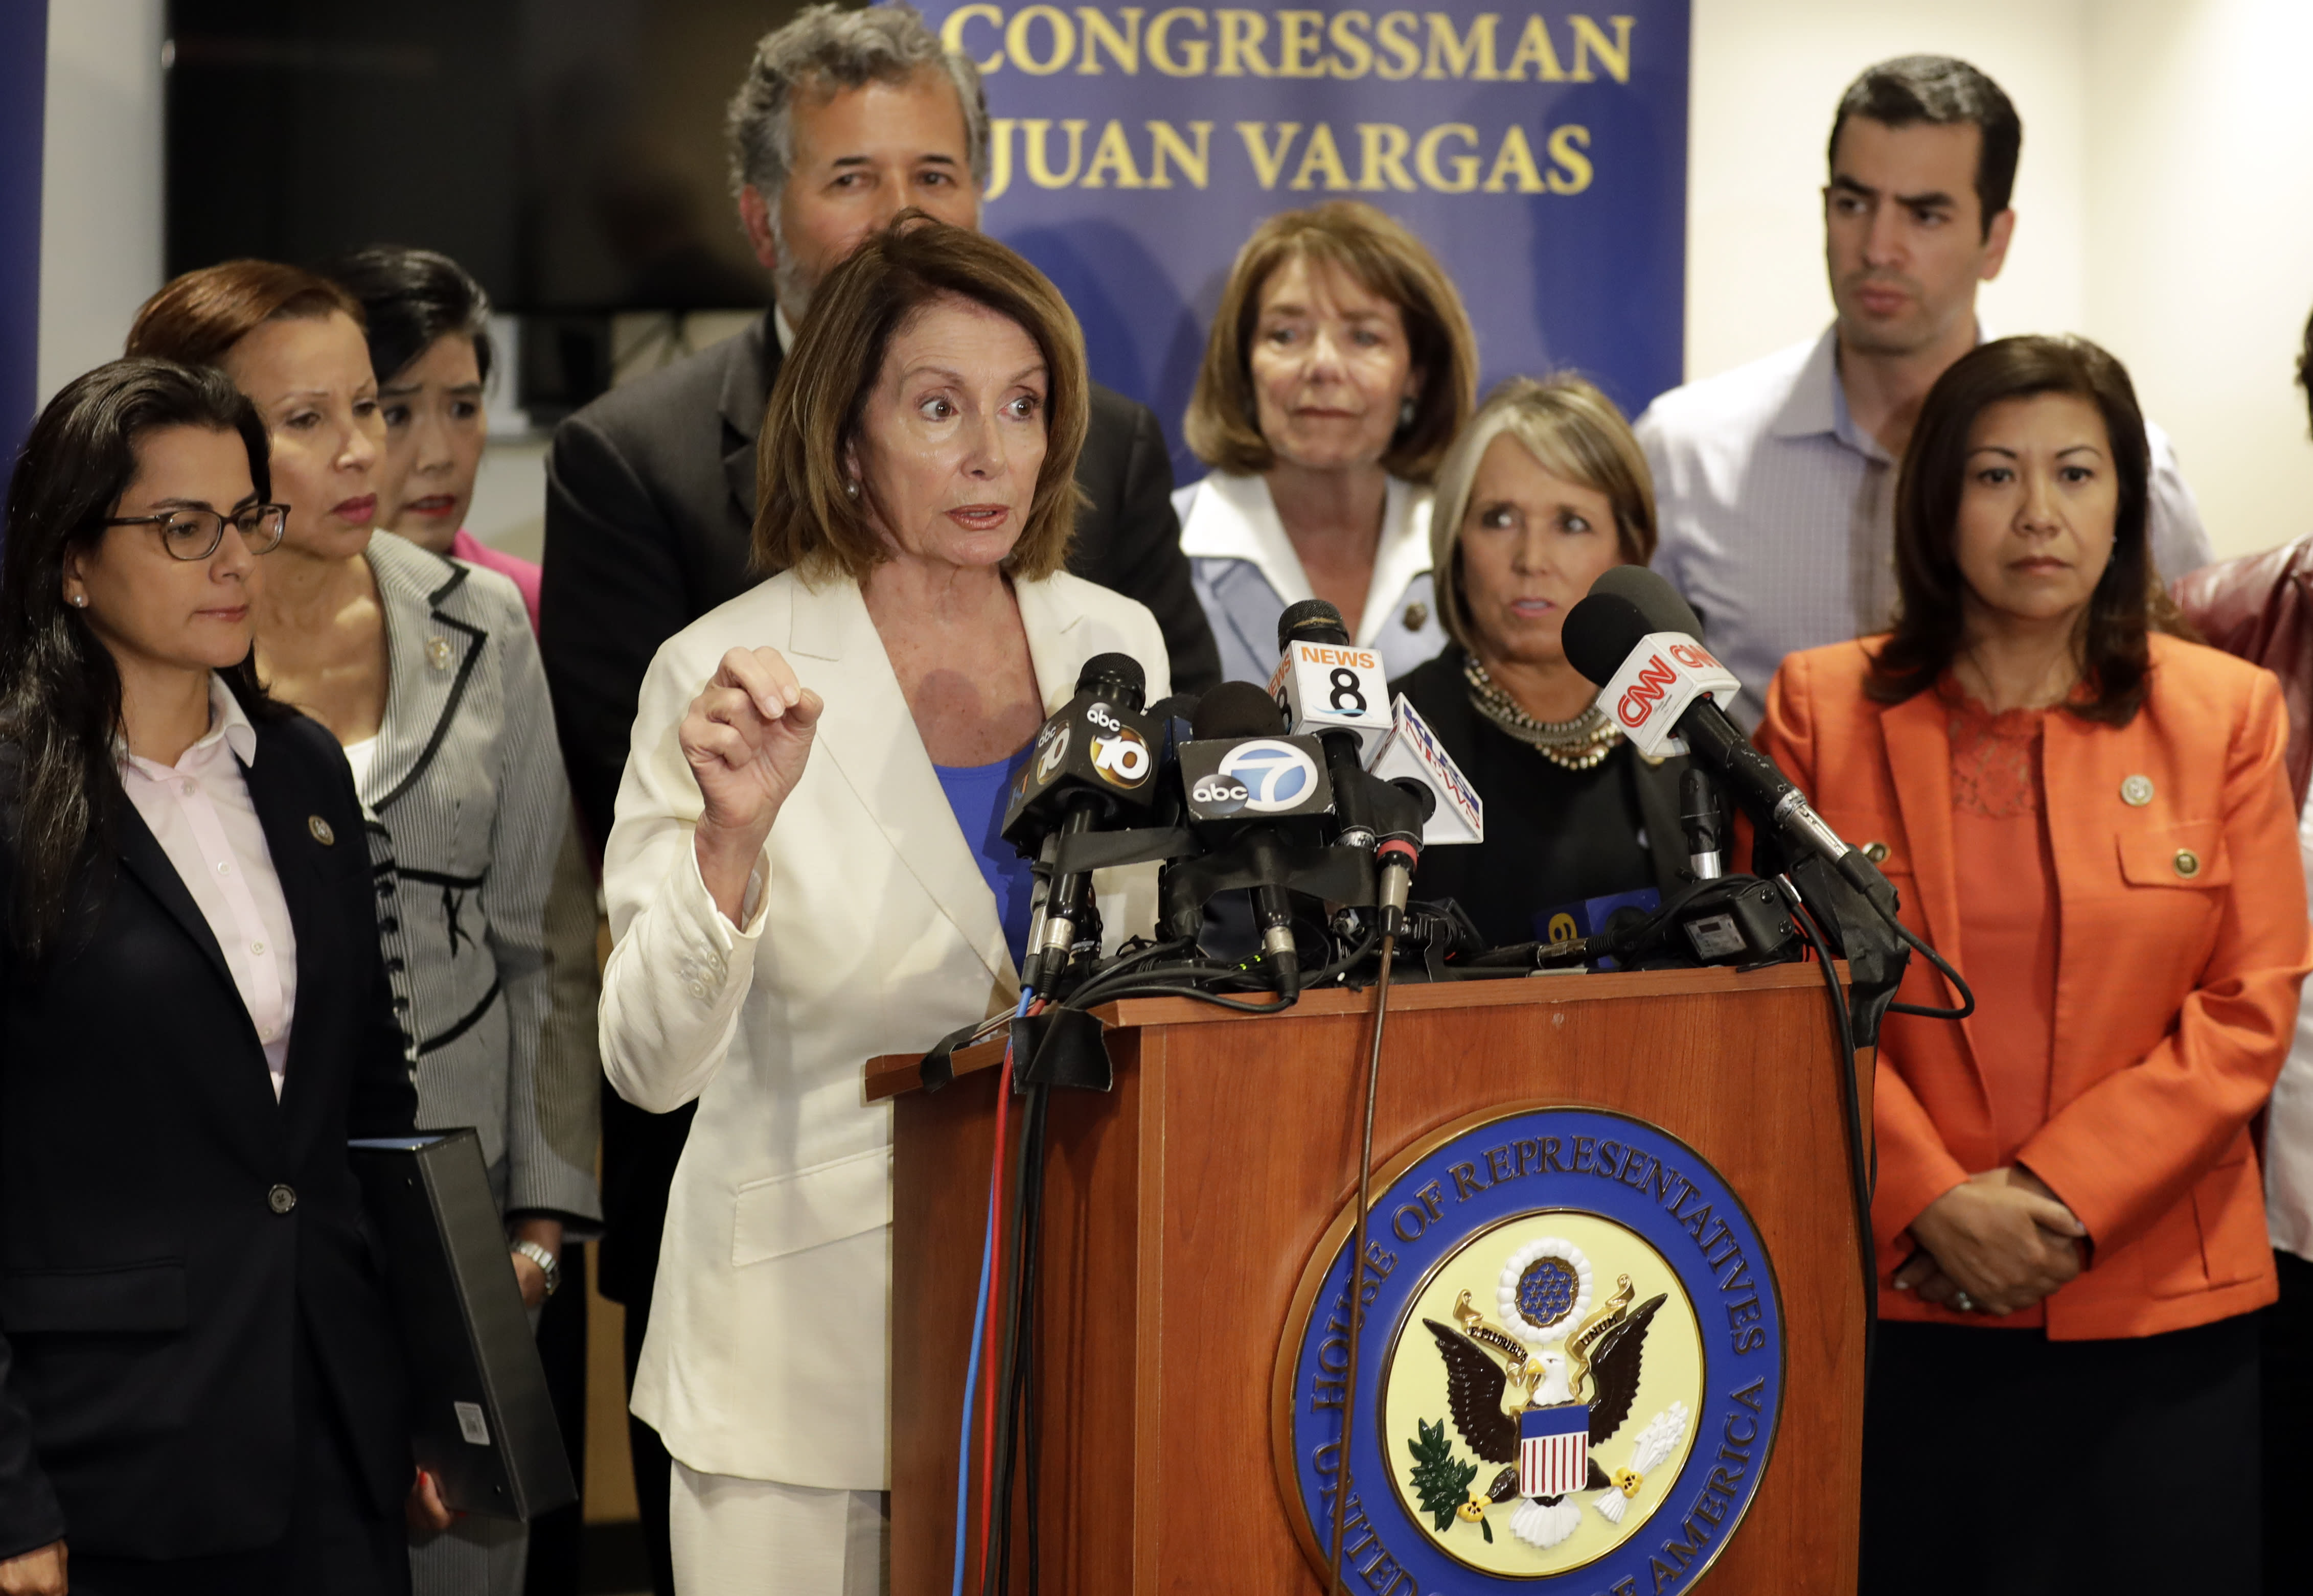 """<span class=""""s1"""">House Minority Leader Nancy Pelosi, D-Calif., surrounded by members of the Congressional Hispanic Caucus, talks about their visit to a detention facility near San Diego. (Photo: Gregory Bull/AP)</span>"""